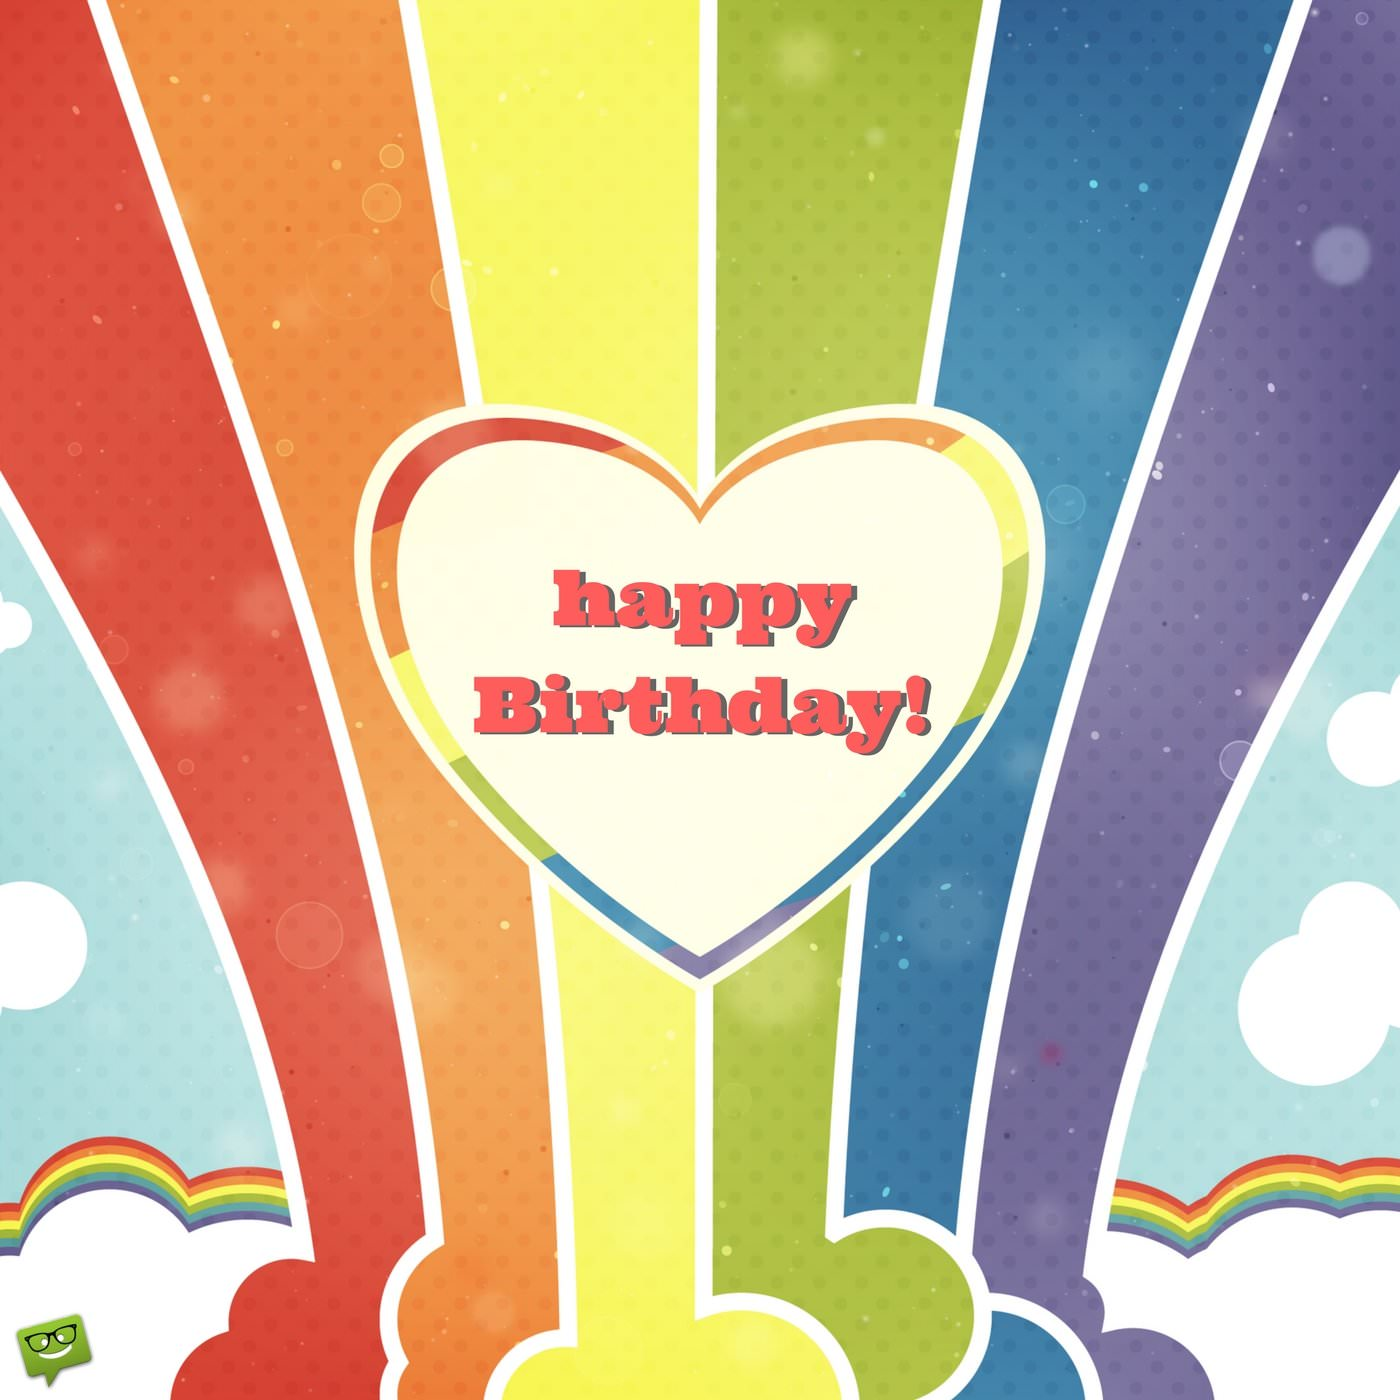 birthday message for a gay friend ; Happy-Birthday-for-a-gay-friend-on-background-with-pride-colors